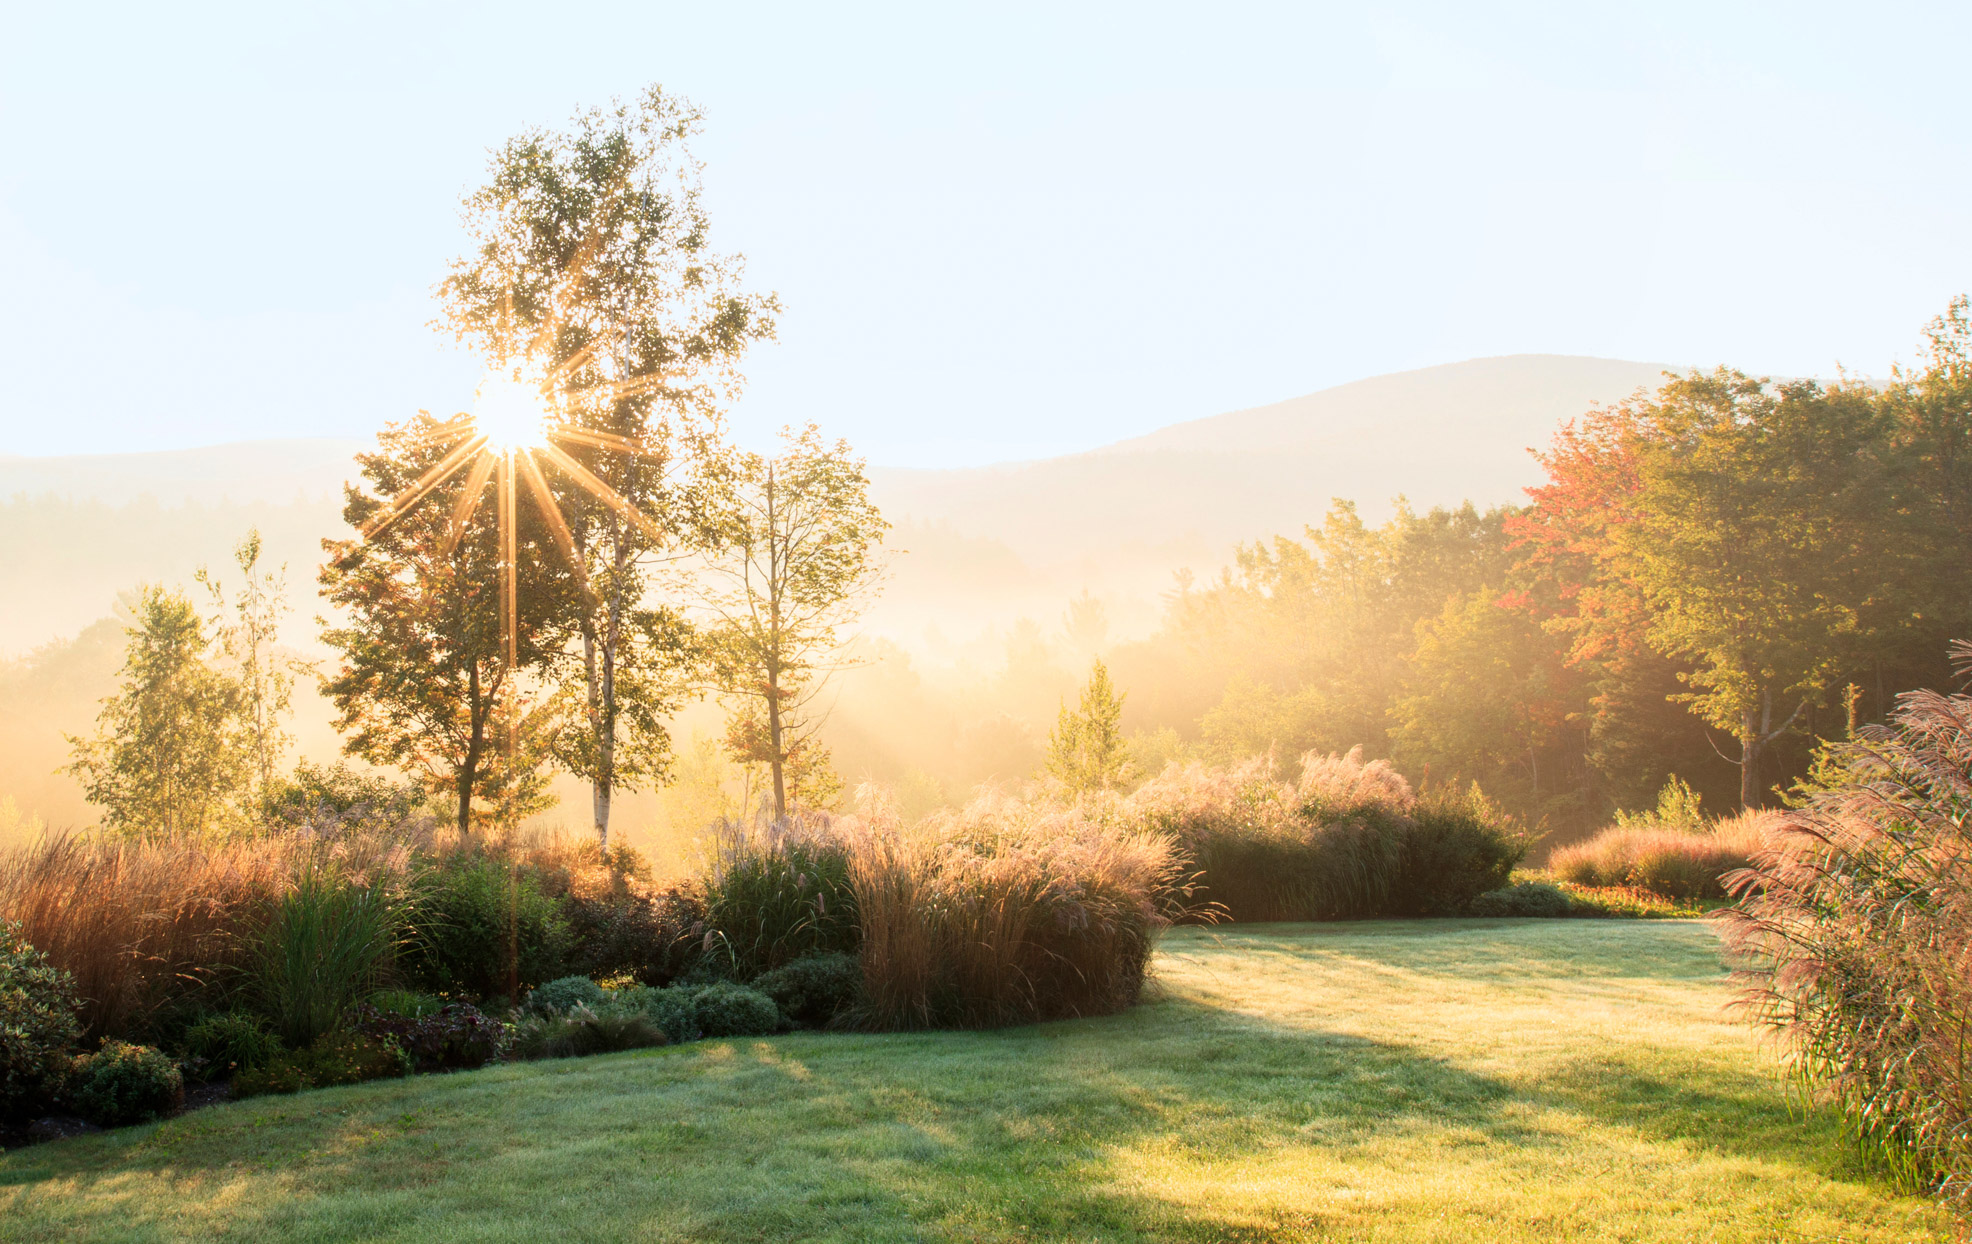 misty sunrise through the trees in the meadow